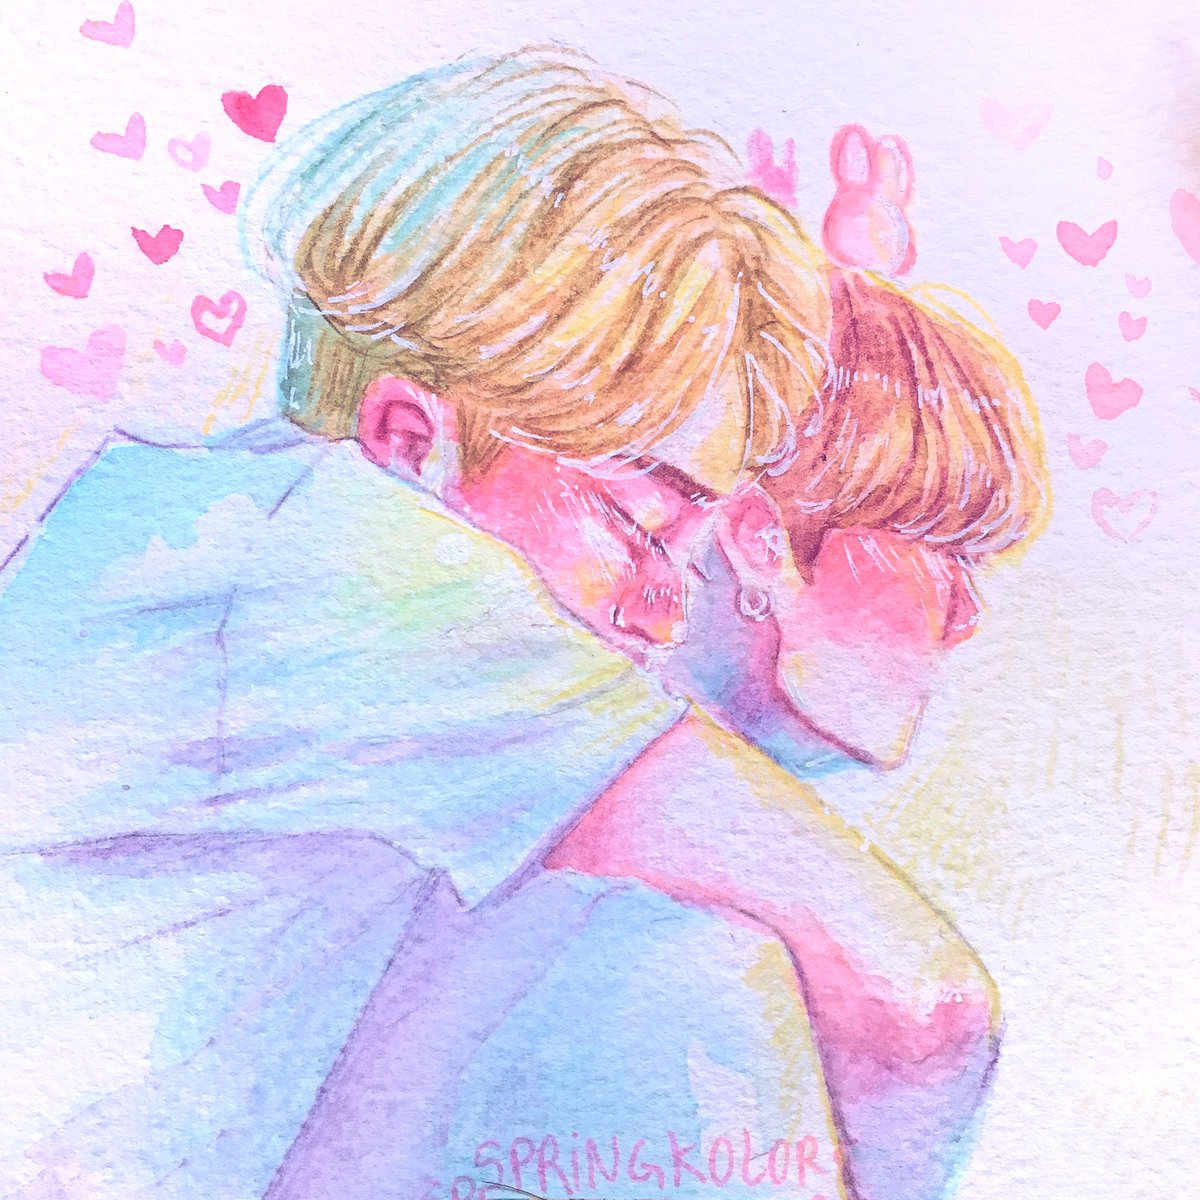 You are my home    (I still can't get over it) #jikook #jikookmin #kookmin #jimin #jungkook #traditionalarts #watercolors #btsfanart #jikookfanart<br>http://pic.twitter.com/oTWbgUTzmu